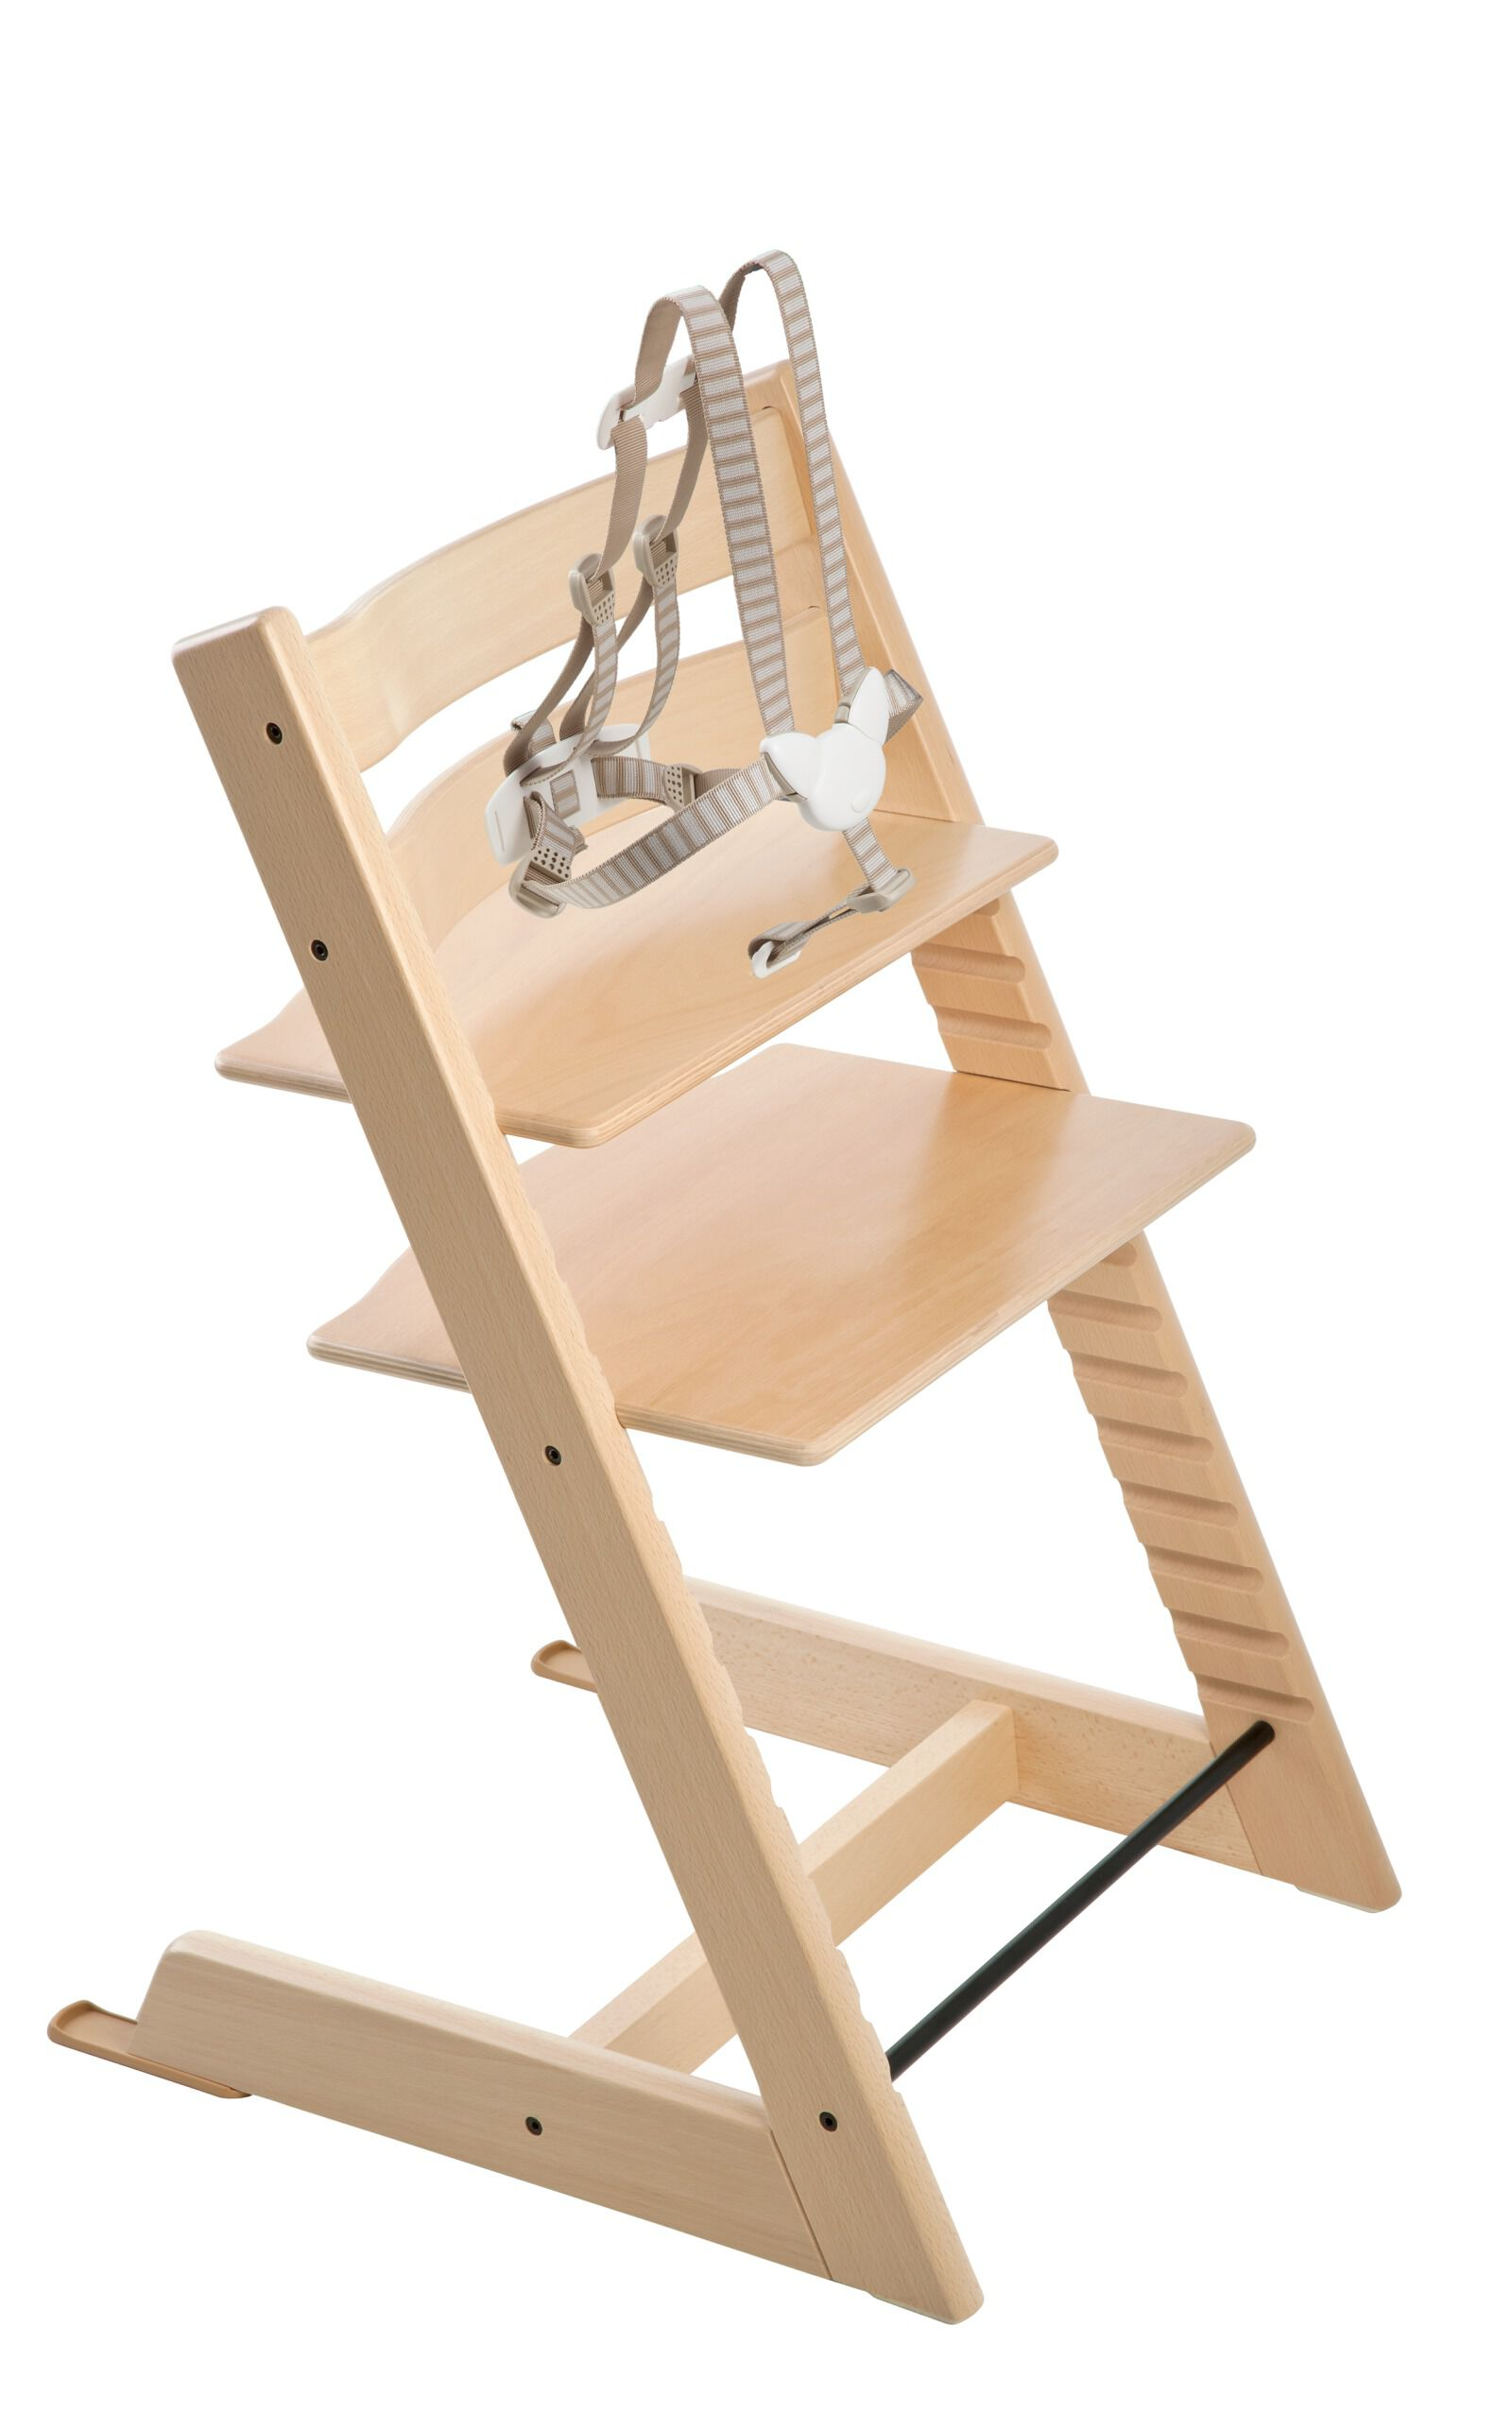 The Classic Wooden High Chair For Baby And Child. Tripp Trapp Chair